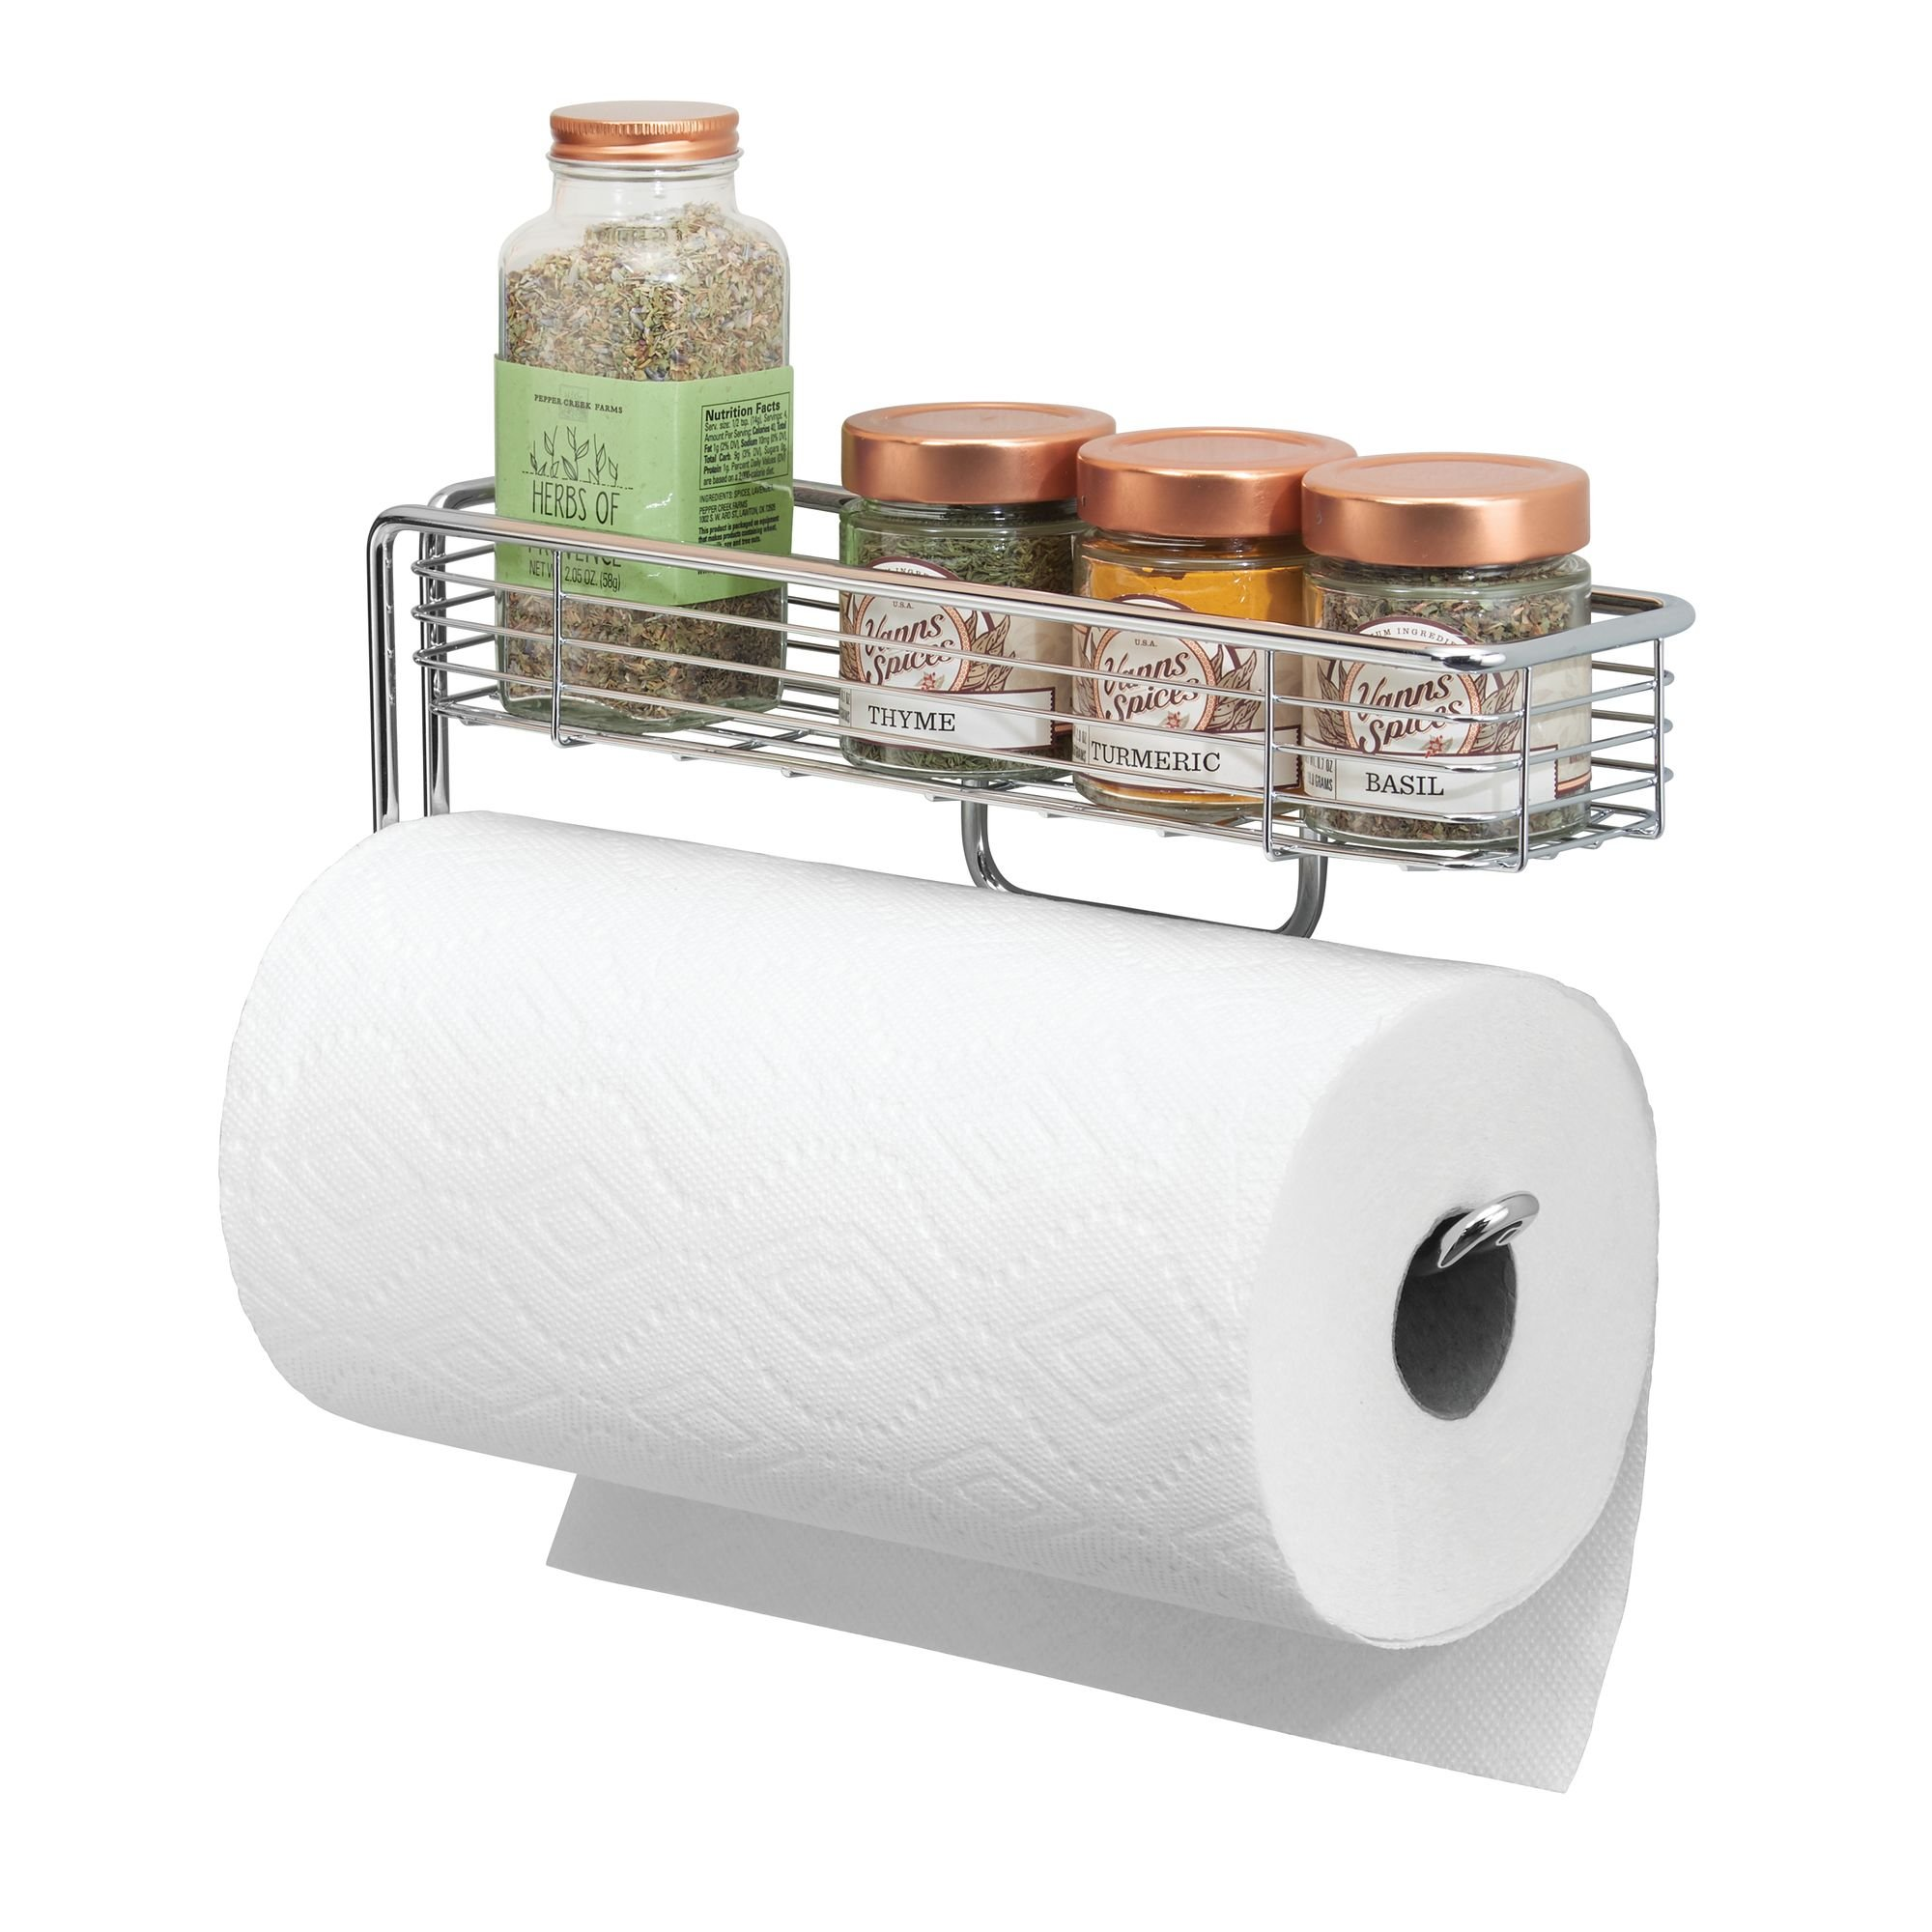 mDesign Wall Mount Paper Towel Holder with Storage Shelf for Kitchen, Pantry, Laundry, Garage Organization - Strong Steel Wire with Chrome Finish